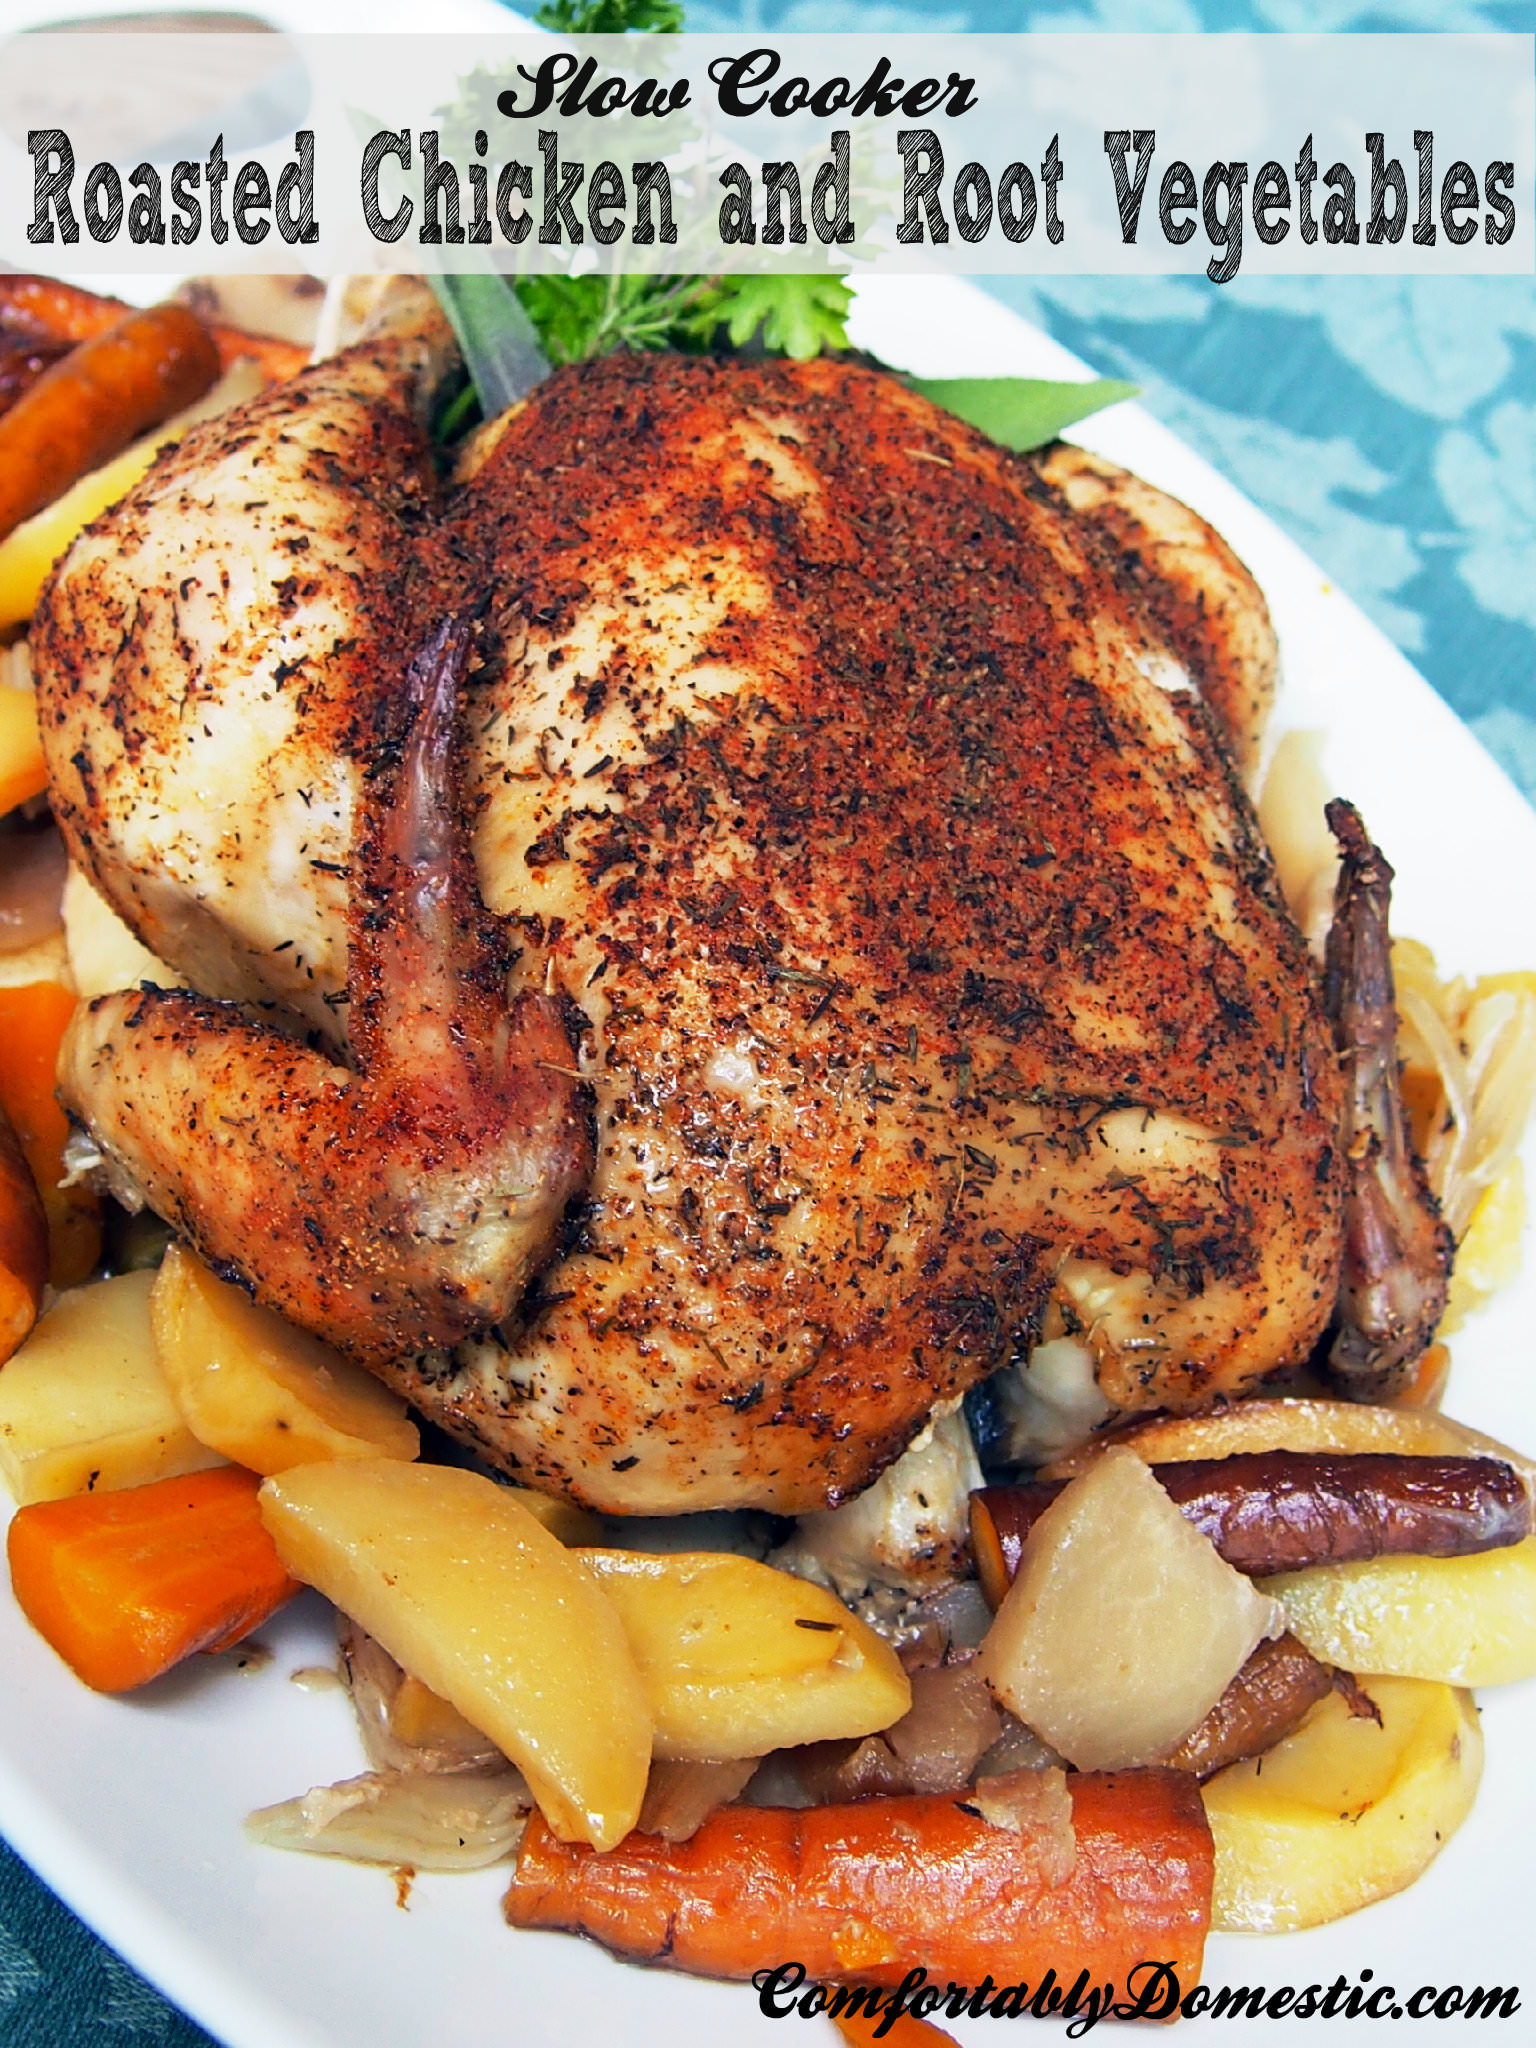 Slow cooker whole roasted chicken is the perfect dinner! Succulent, seasoned chicken on a bed of root vegetables, slow roasted all day for a flavorful and fragrant weeknight meal. | ComfortablyDomestic.com